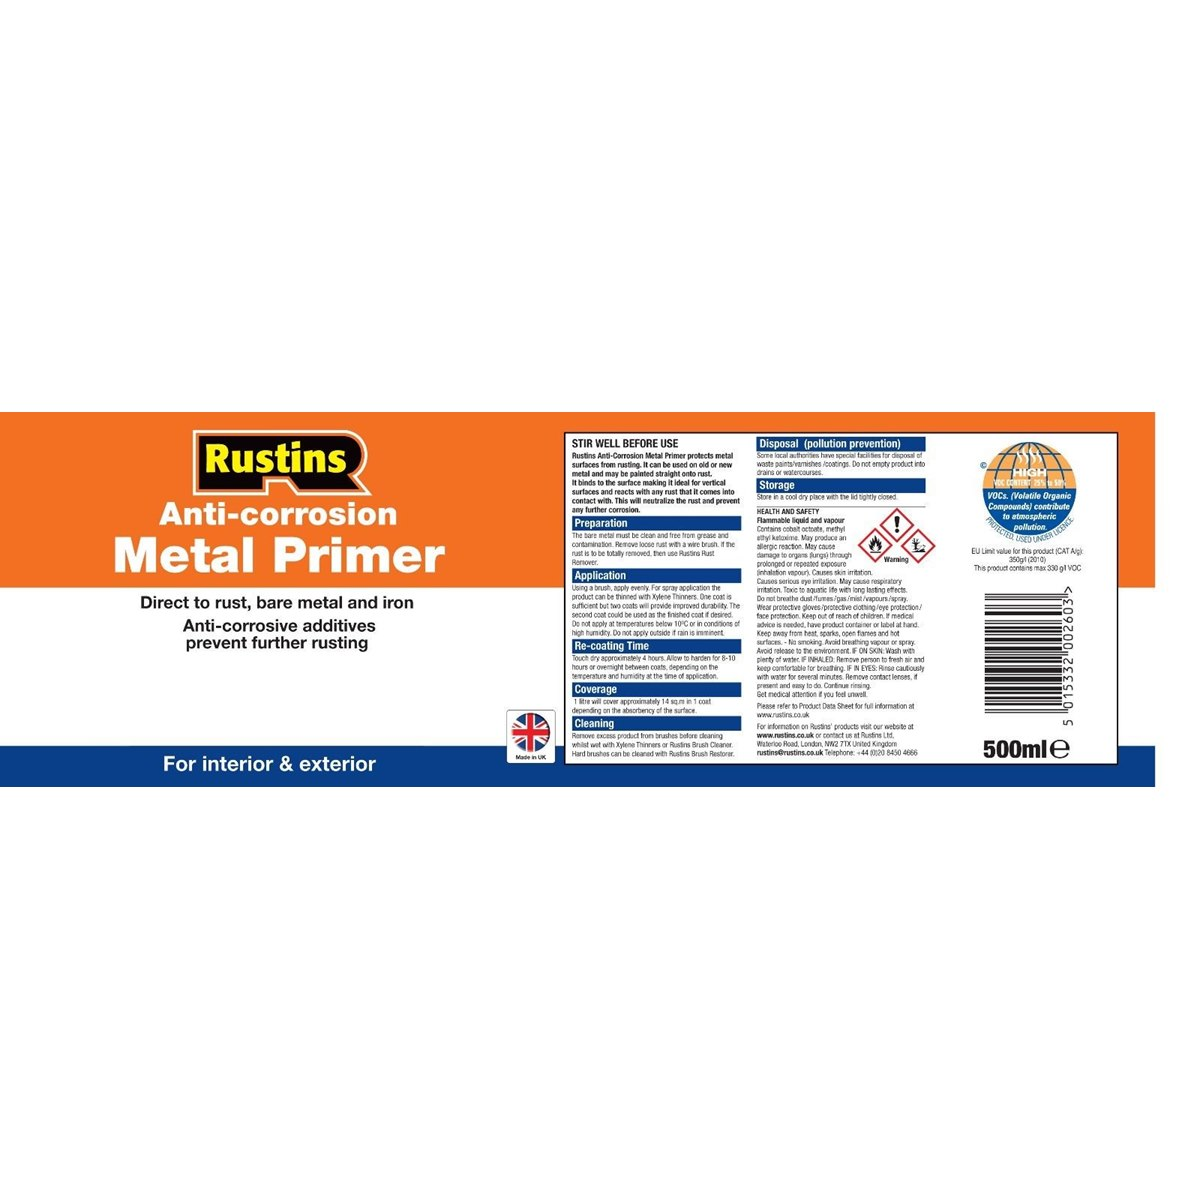 Where to Buy Anti-Corrosion Metal Primer